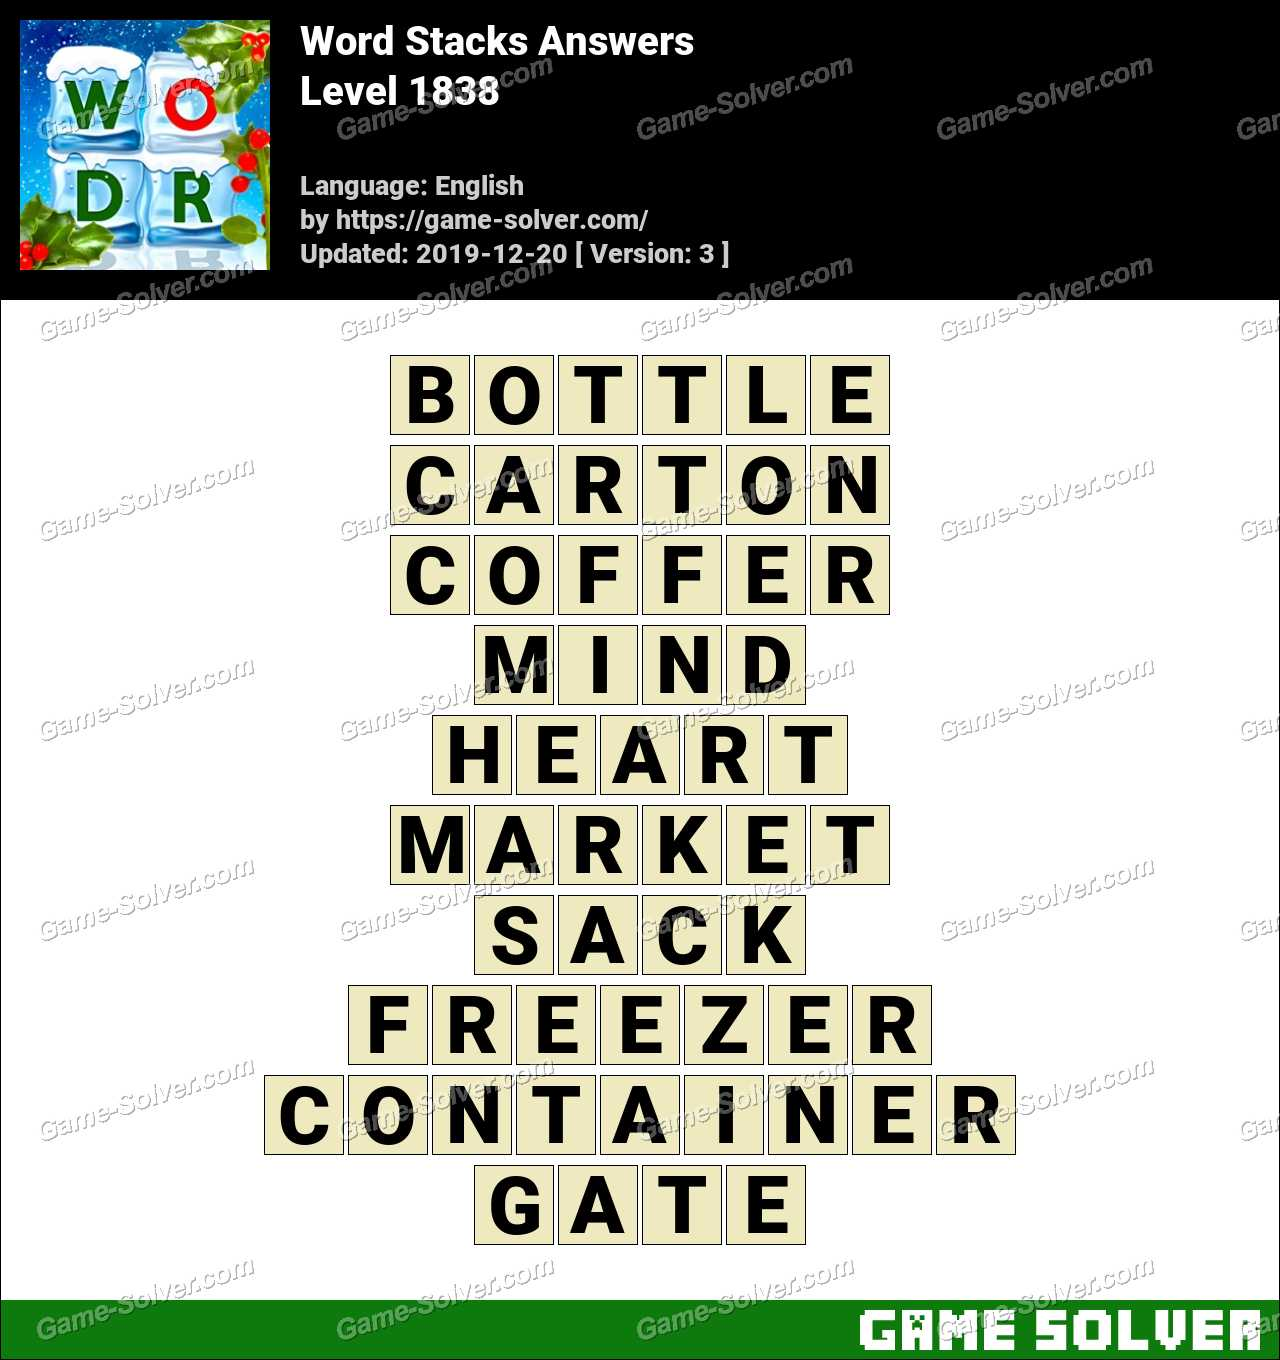 Word Stacks Level 1838 Answers